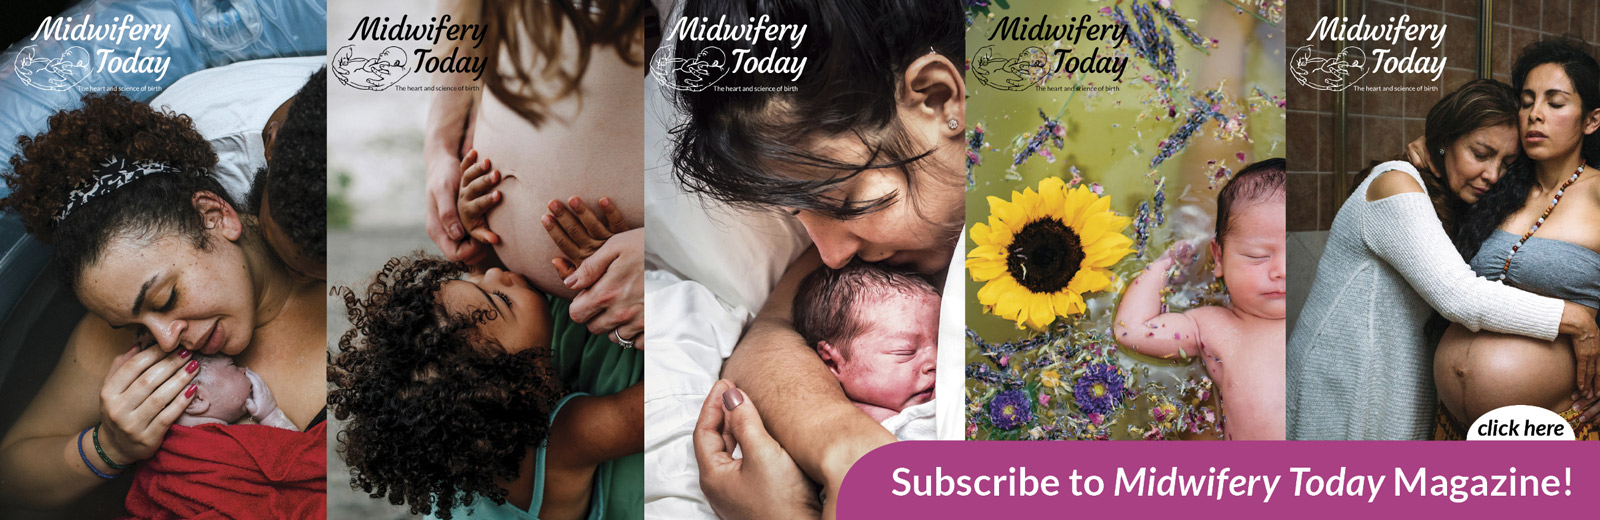 Midwifery Today Subscription